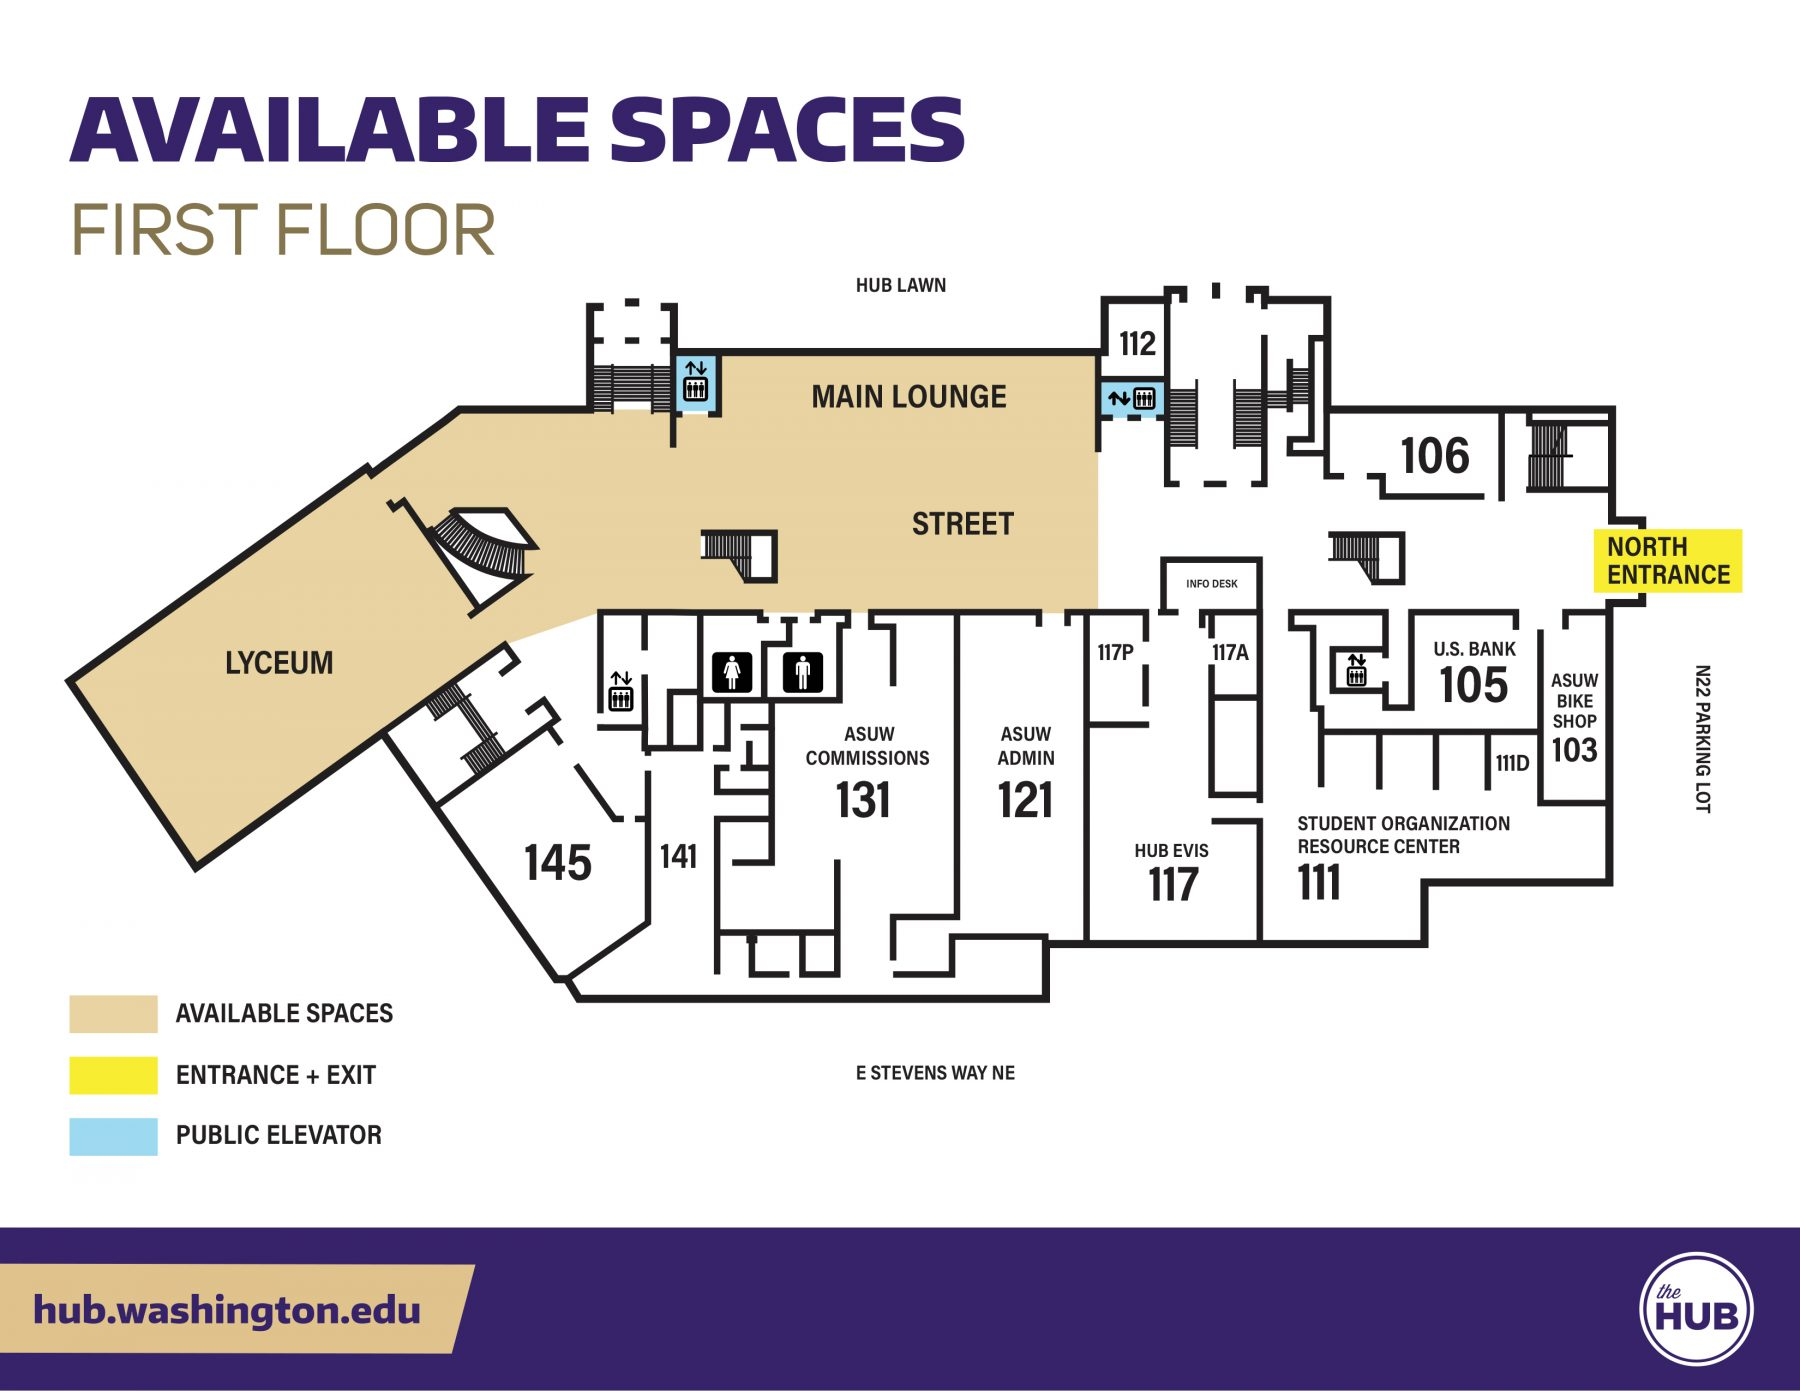 HUB Available Spaces - First Floor